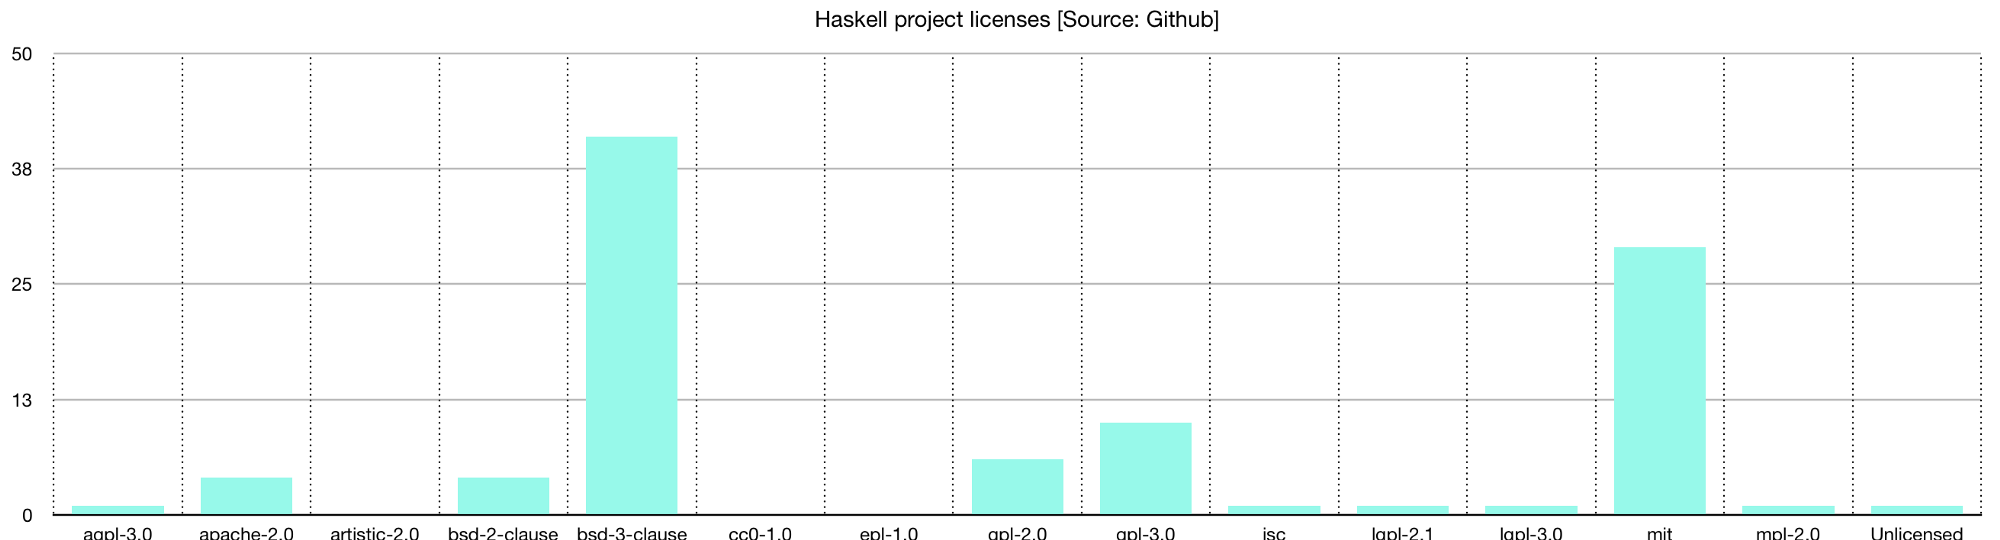 License popularity in Haskell projects, expressed as a percentage